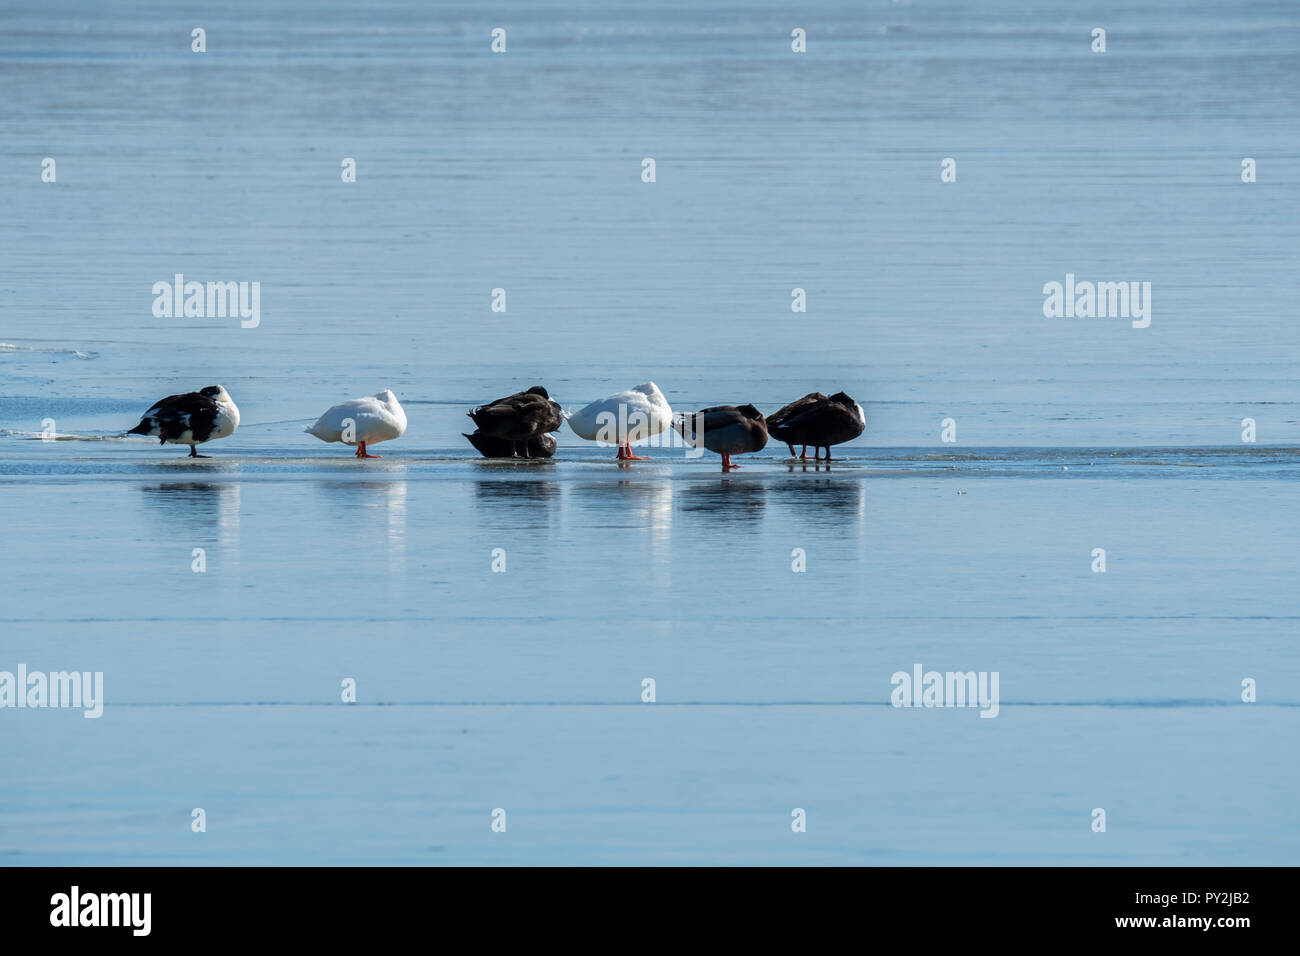 Two American Pekin ducks and hybrid ducks sleep while standing on a frozen lake in Oklahoma, USA. Stock Photo